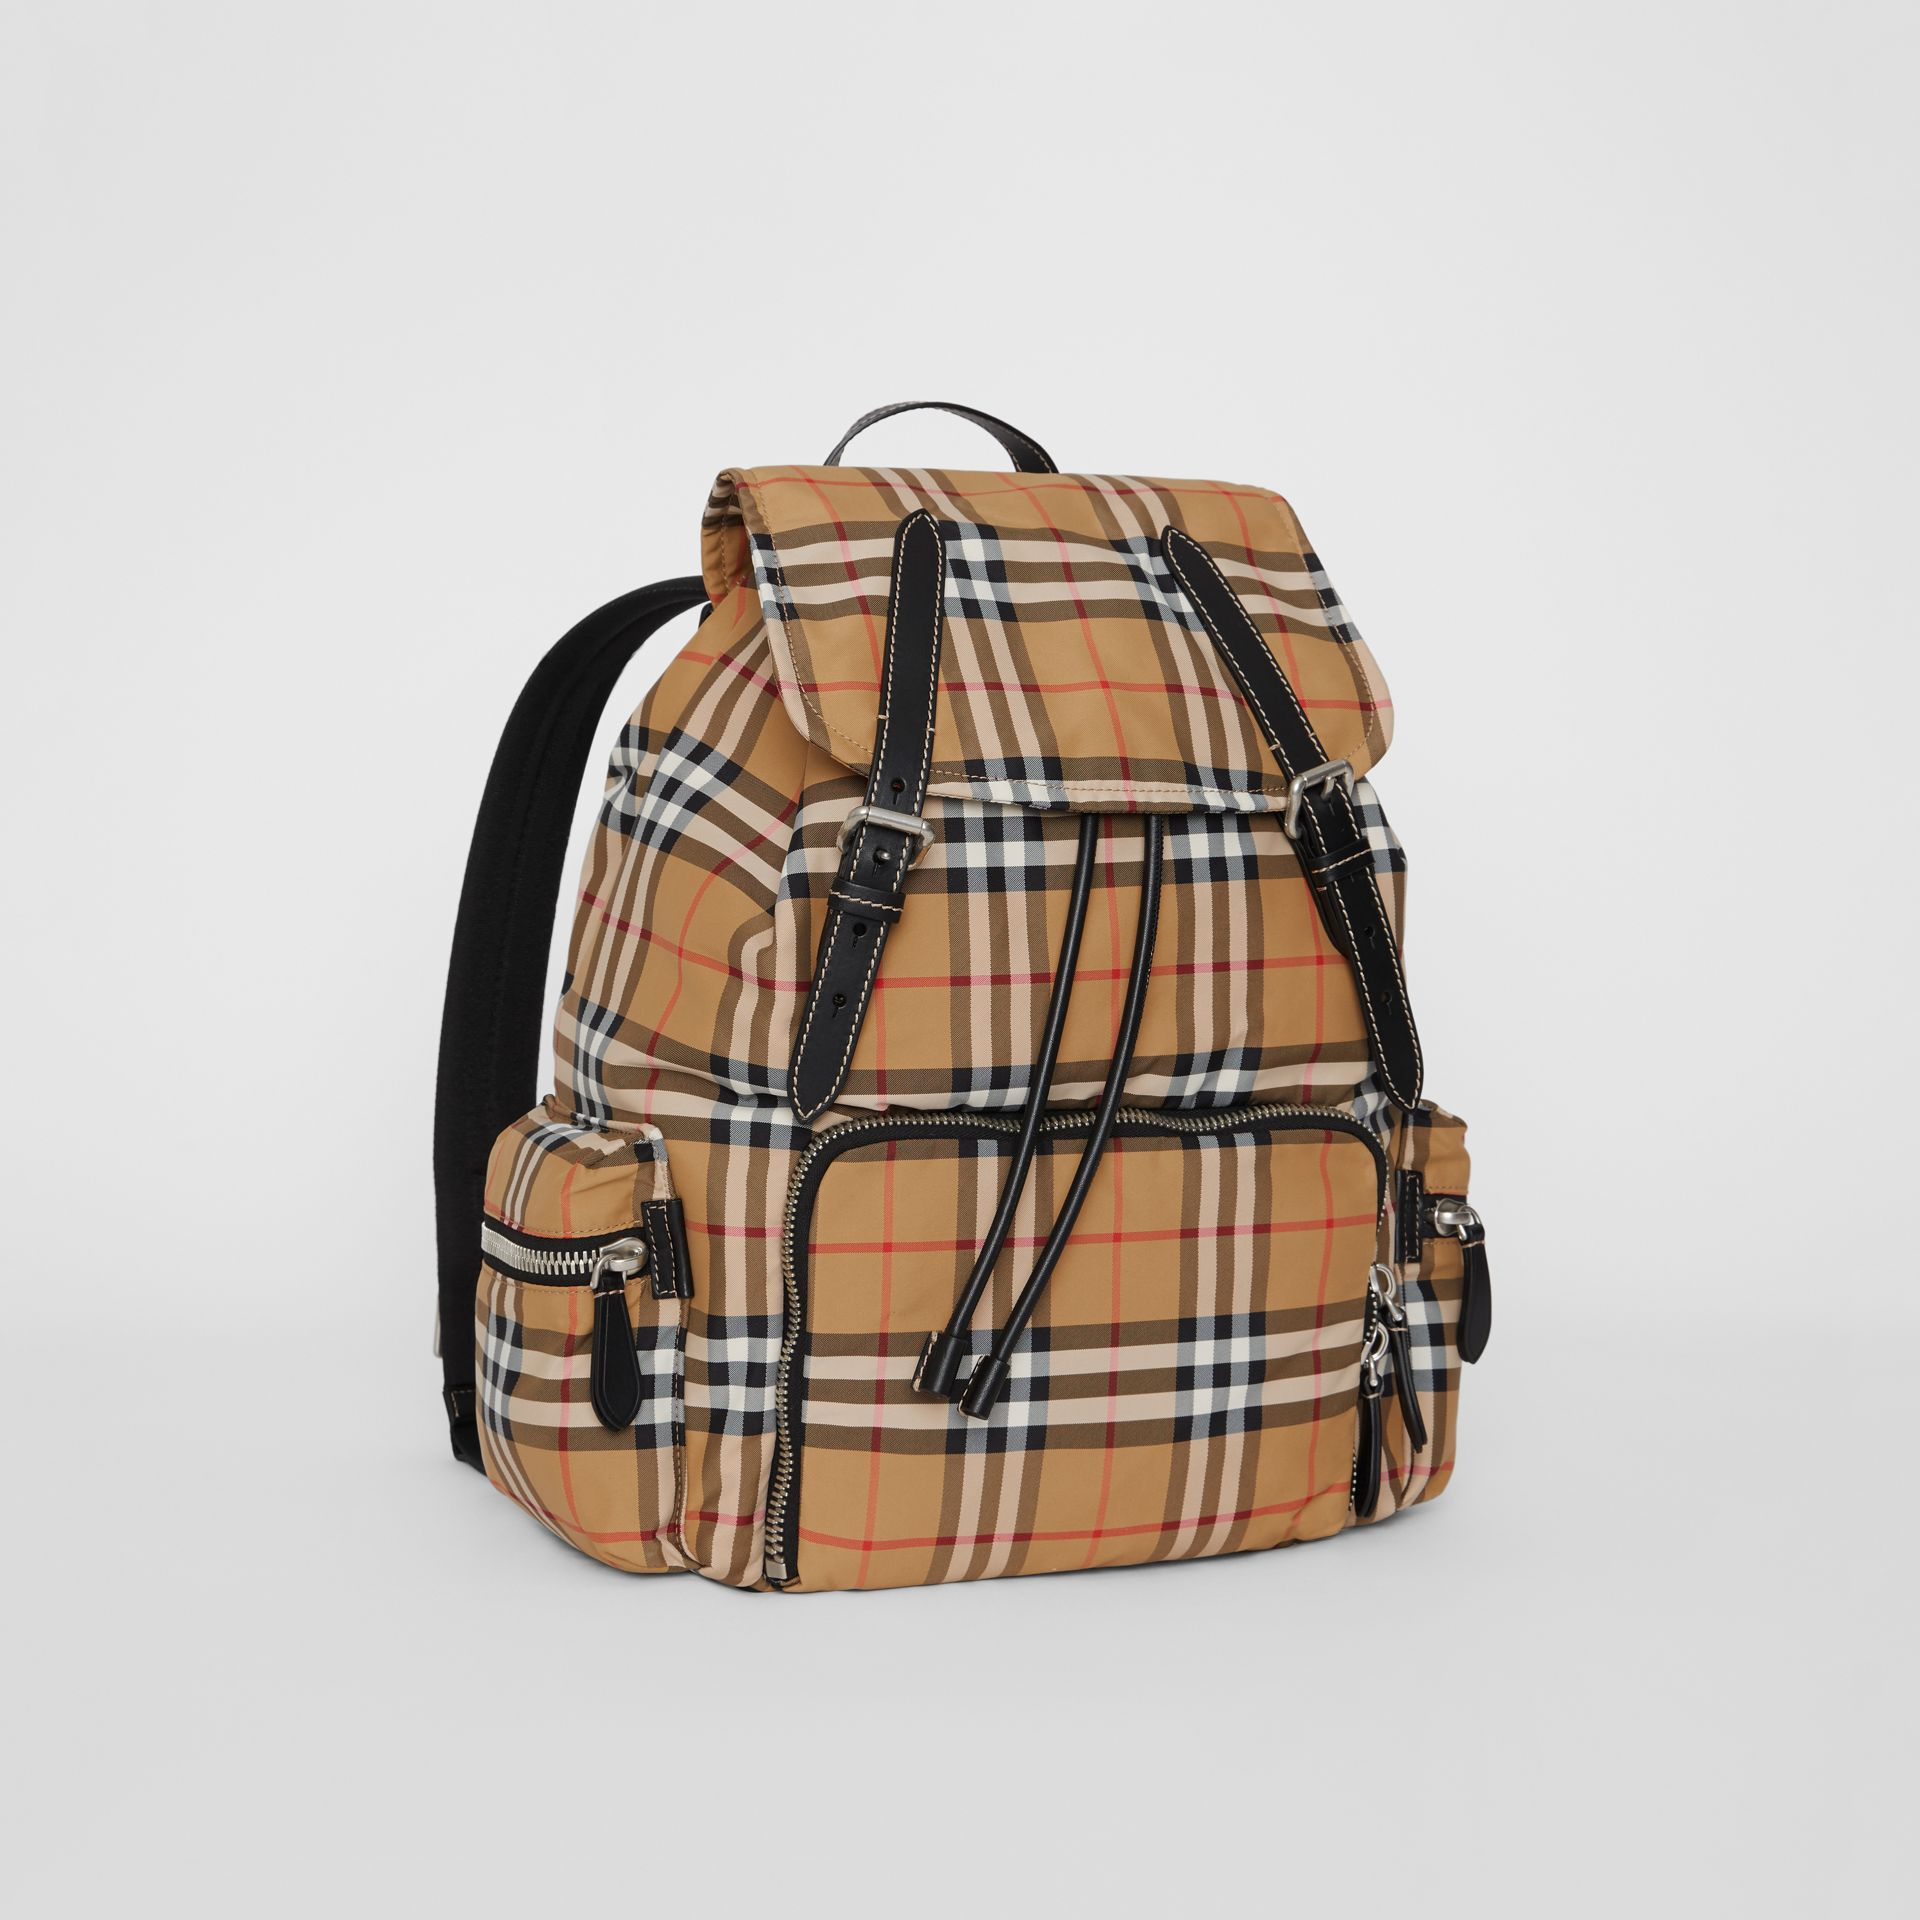 Grand sac The Rucksack en nylon à motif Vintage check (Jaune Antique) - Homme | Burberry - photo de la galerie 6